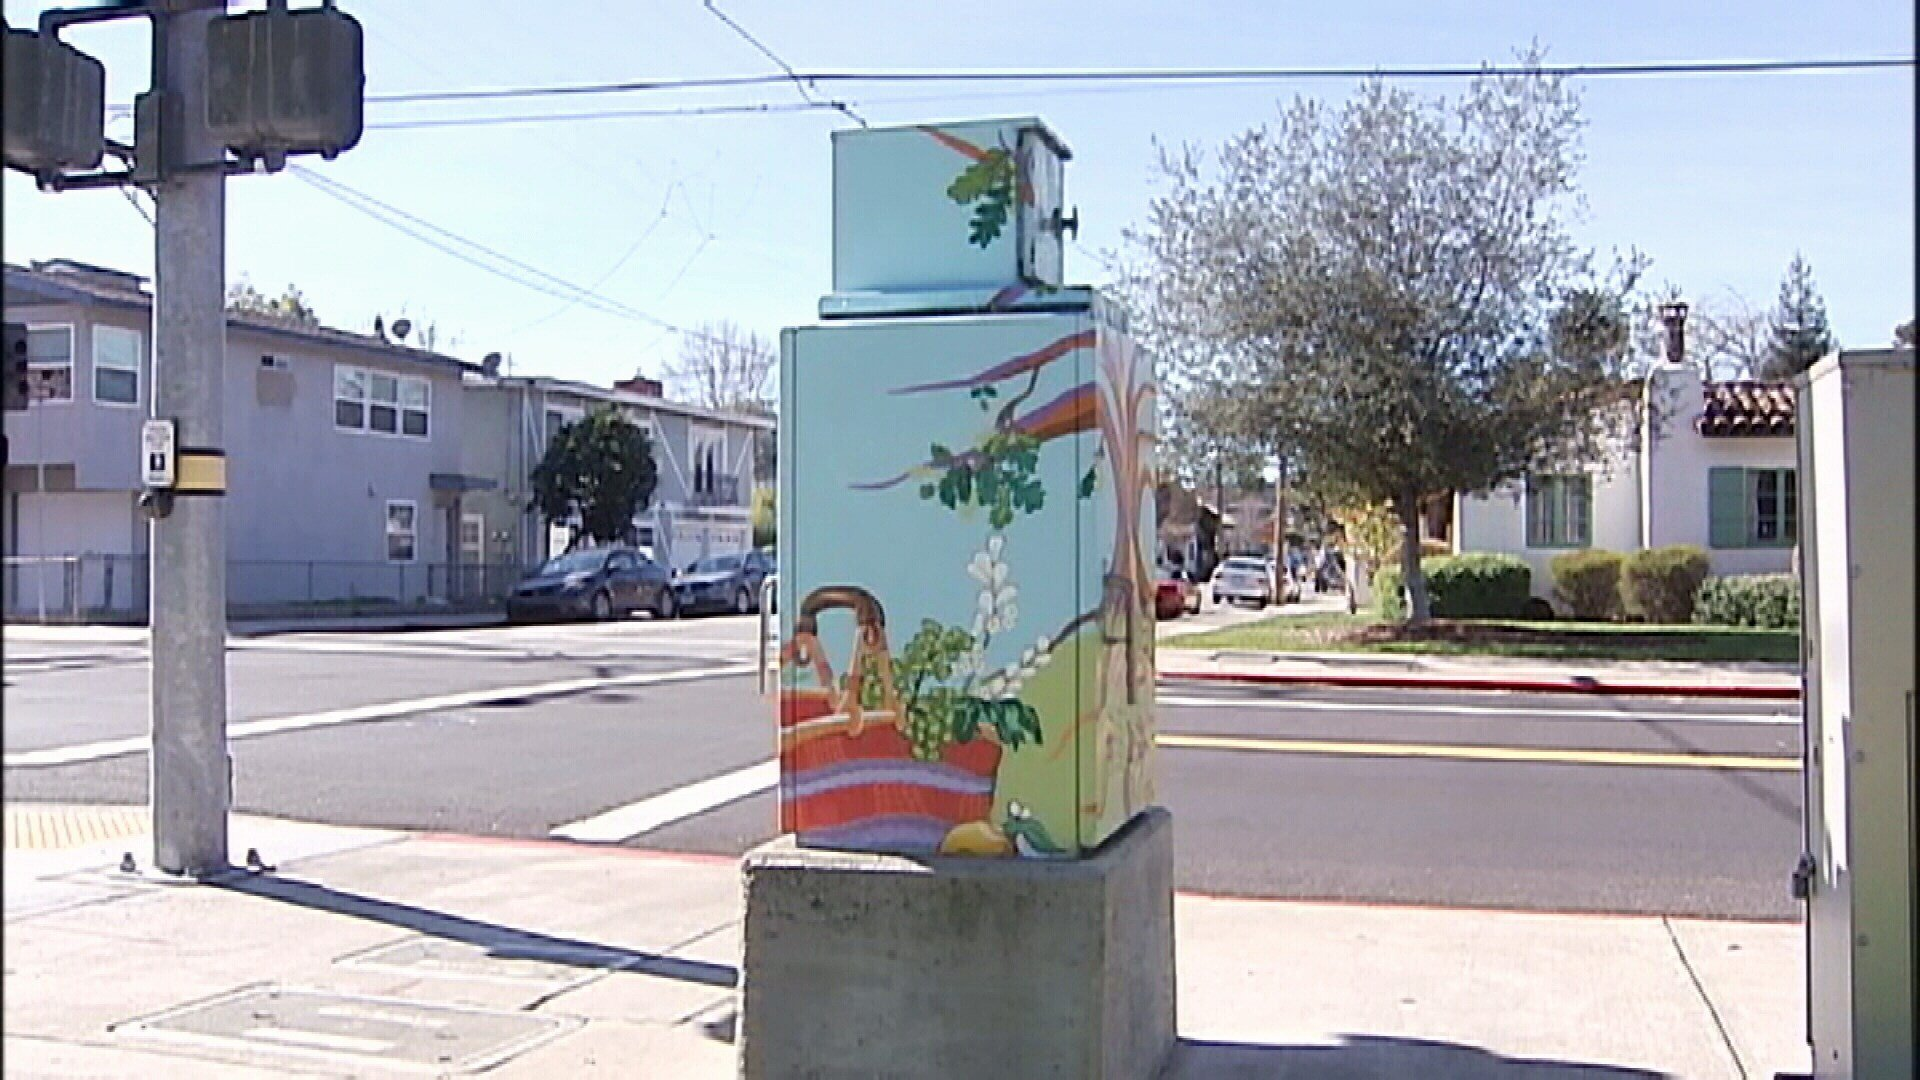 So far, 33 utility city-owned city boxes have been painted. (KSBY photo)